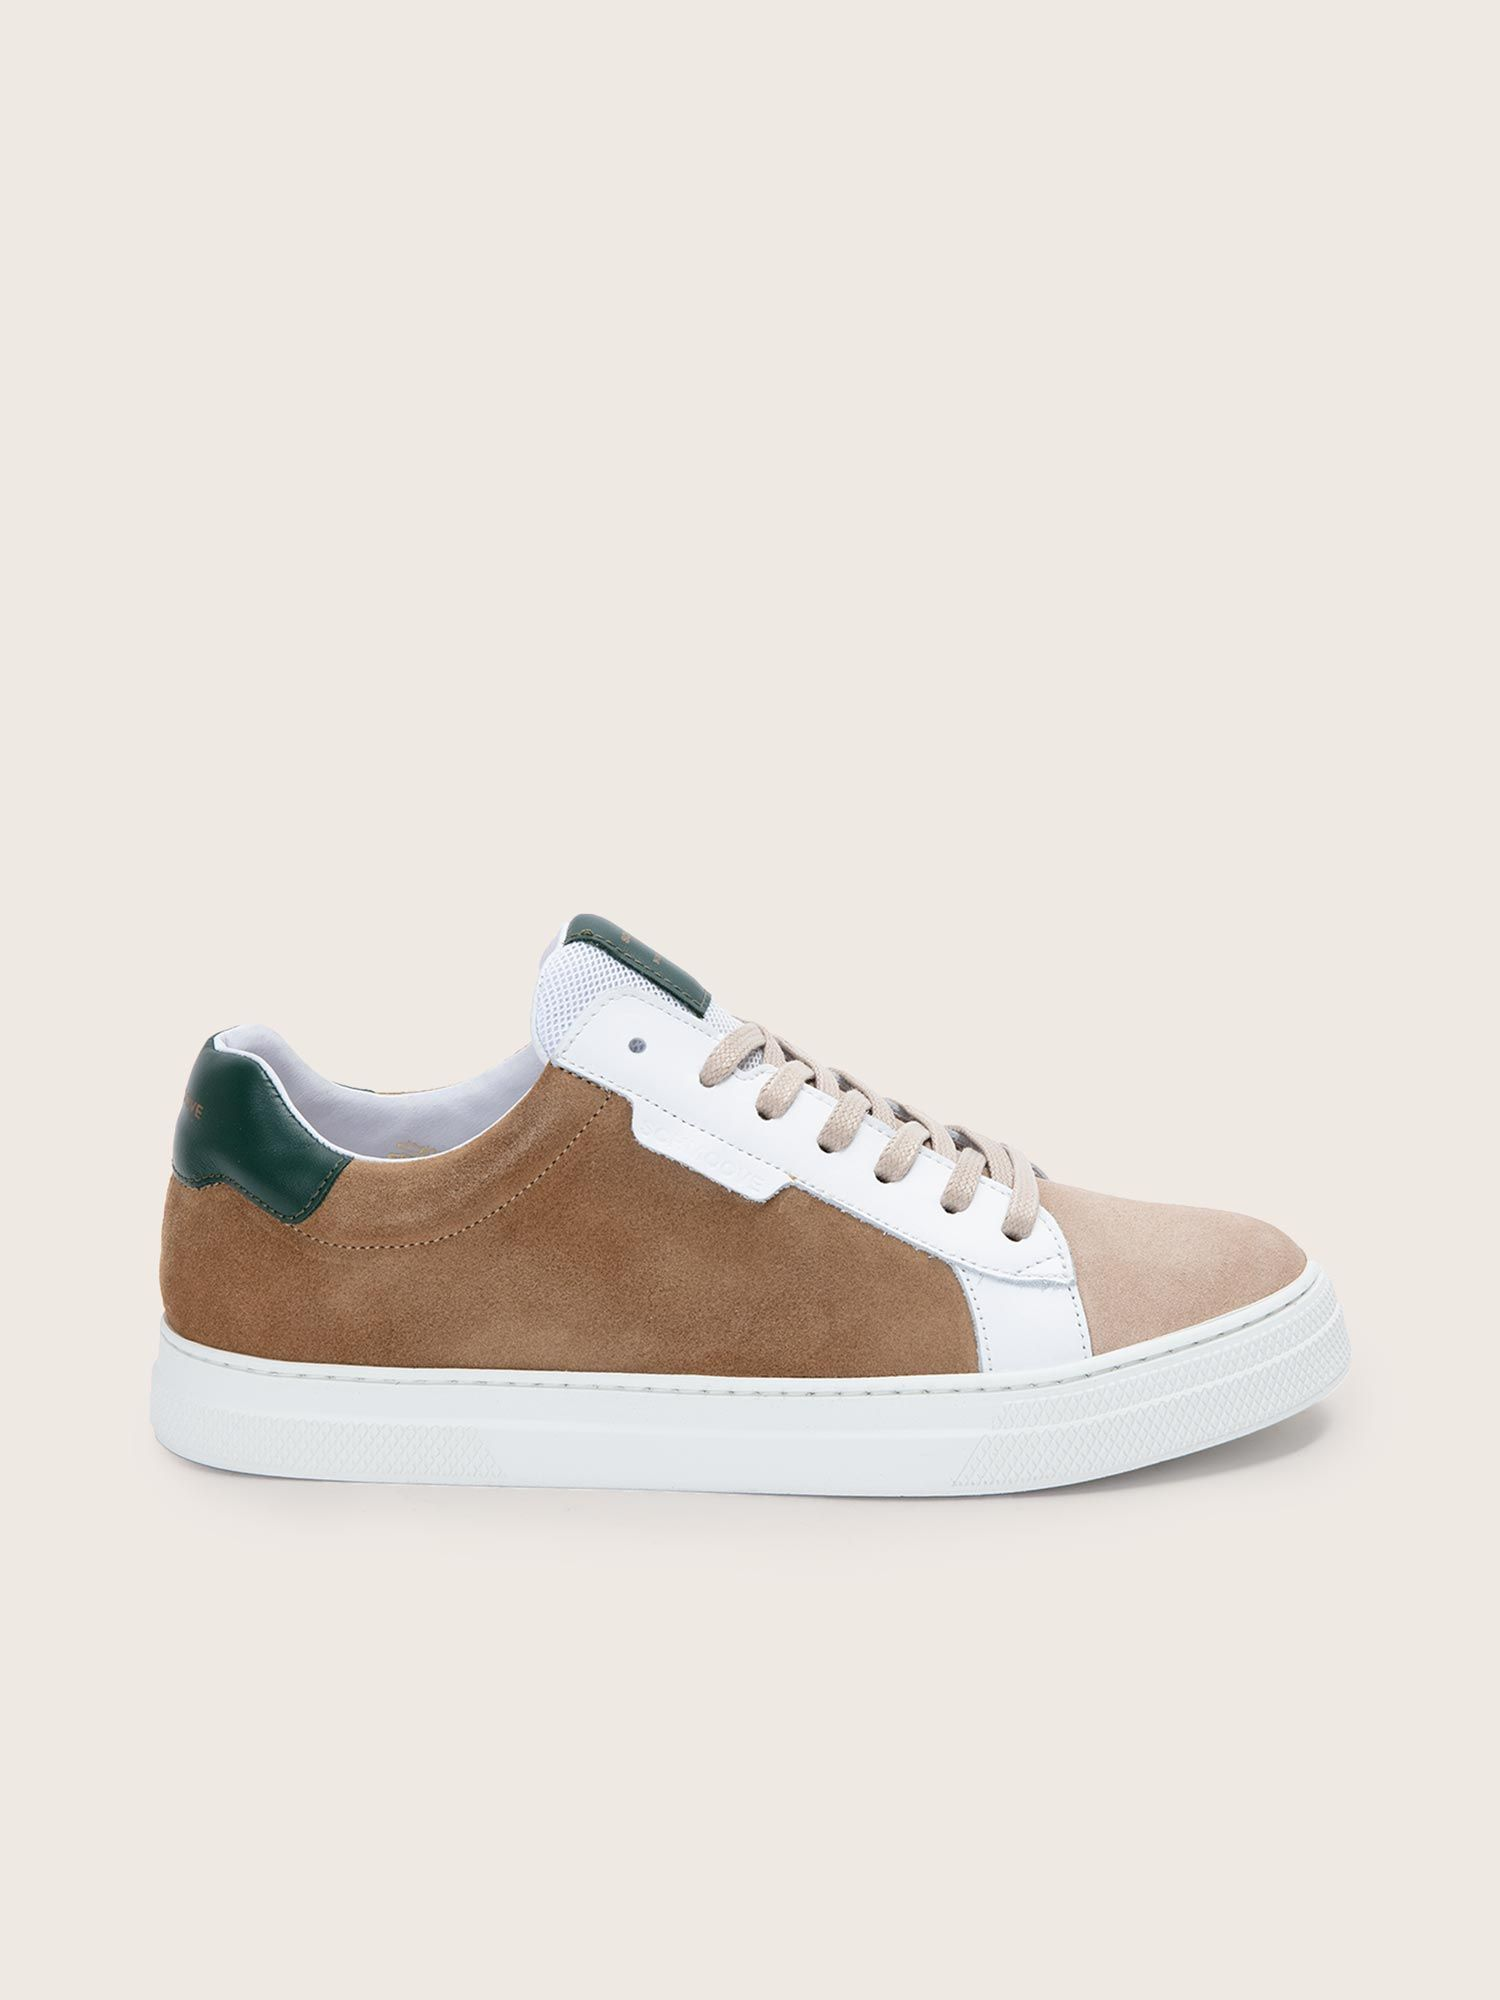 schmoove.fr SPARK CLAY - SUEDE/NAPPA - MUSHROOM/FORET